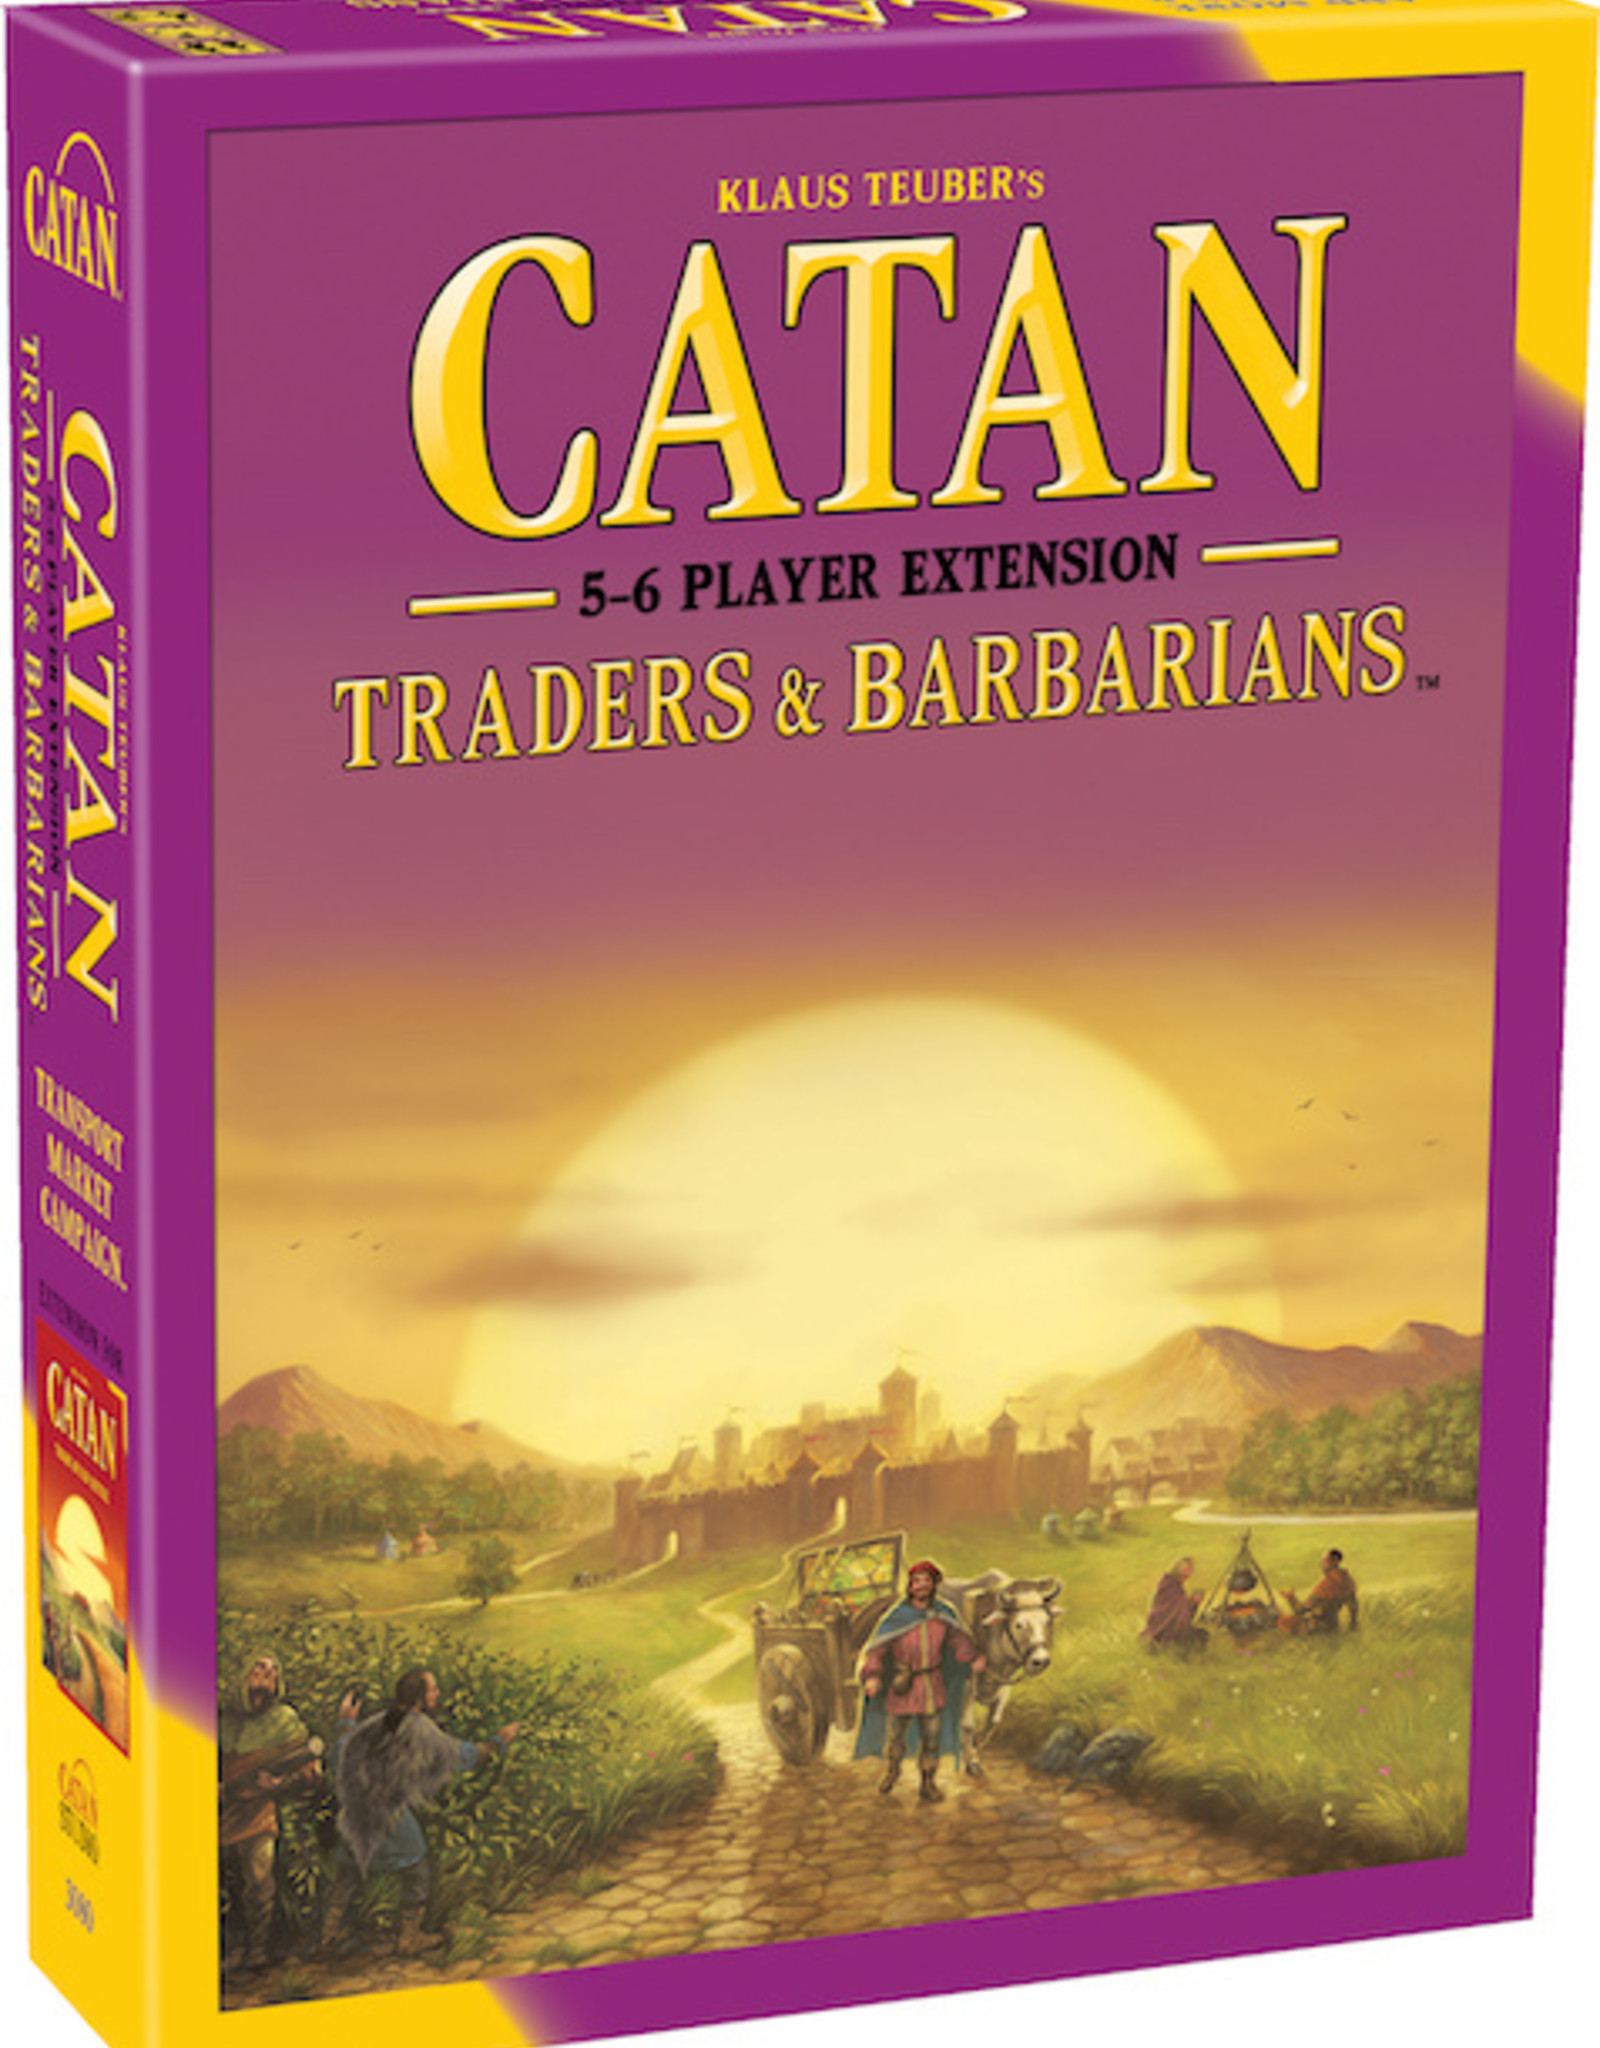 Catan Studios Catan: Traders and Barbarians 5-6 Player Extension